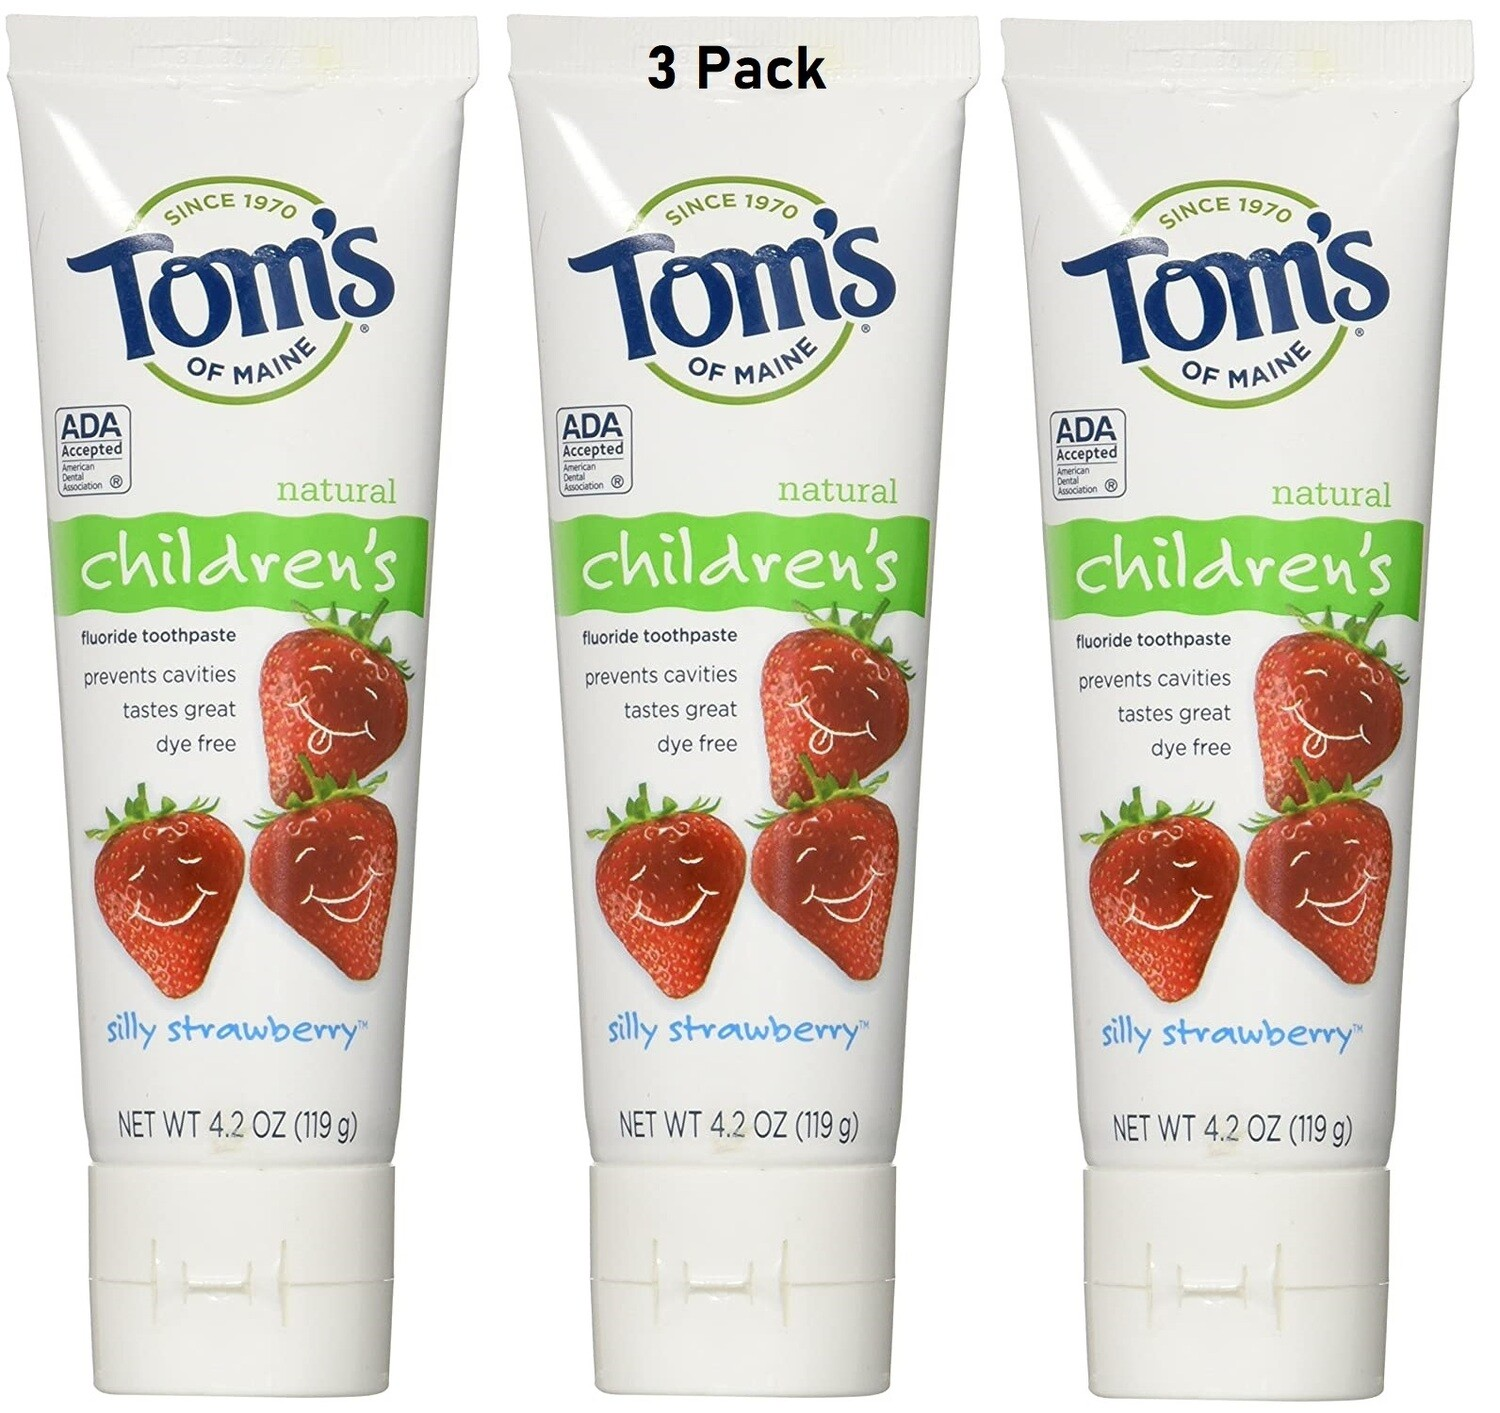 Toms of Maine Anticavity Fluoride Childrens Toothpaste, Silly Strawberry, 4.2 Ounce, Pack of 3